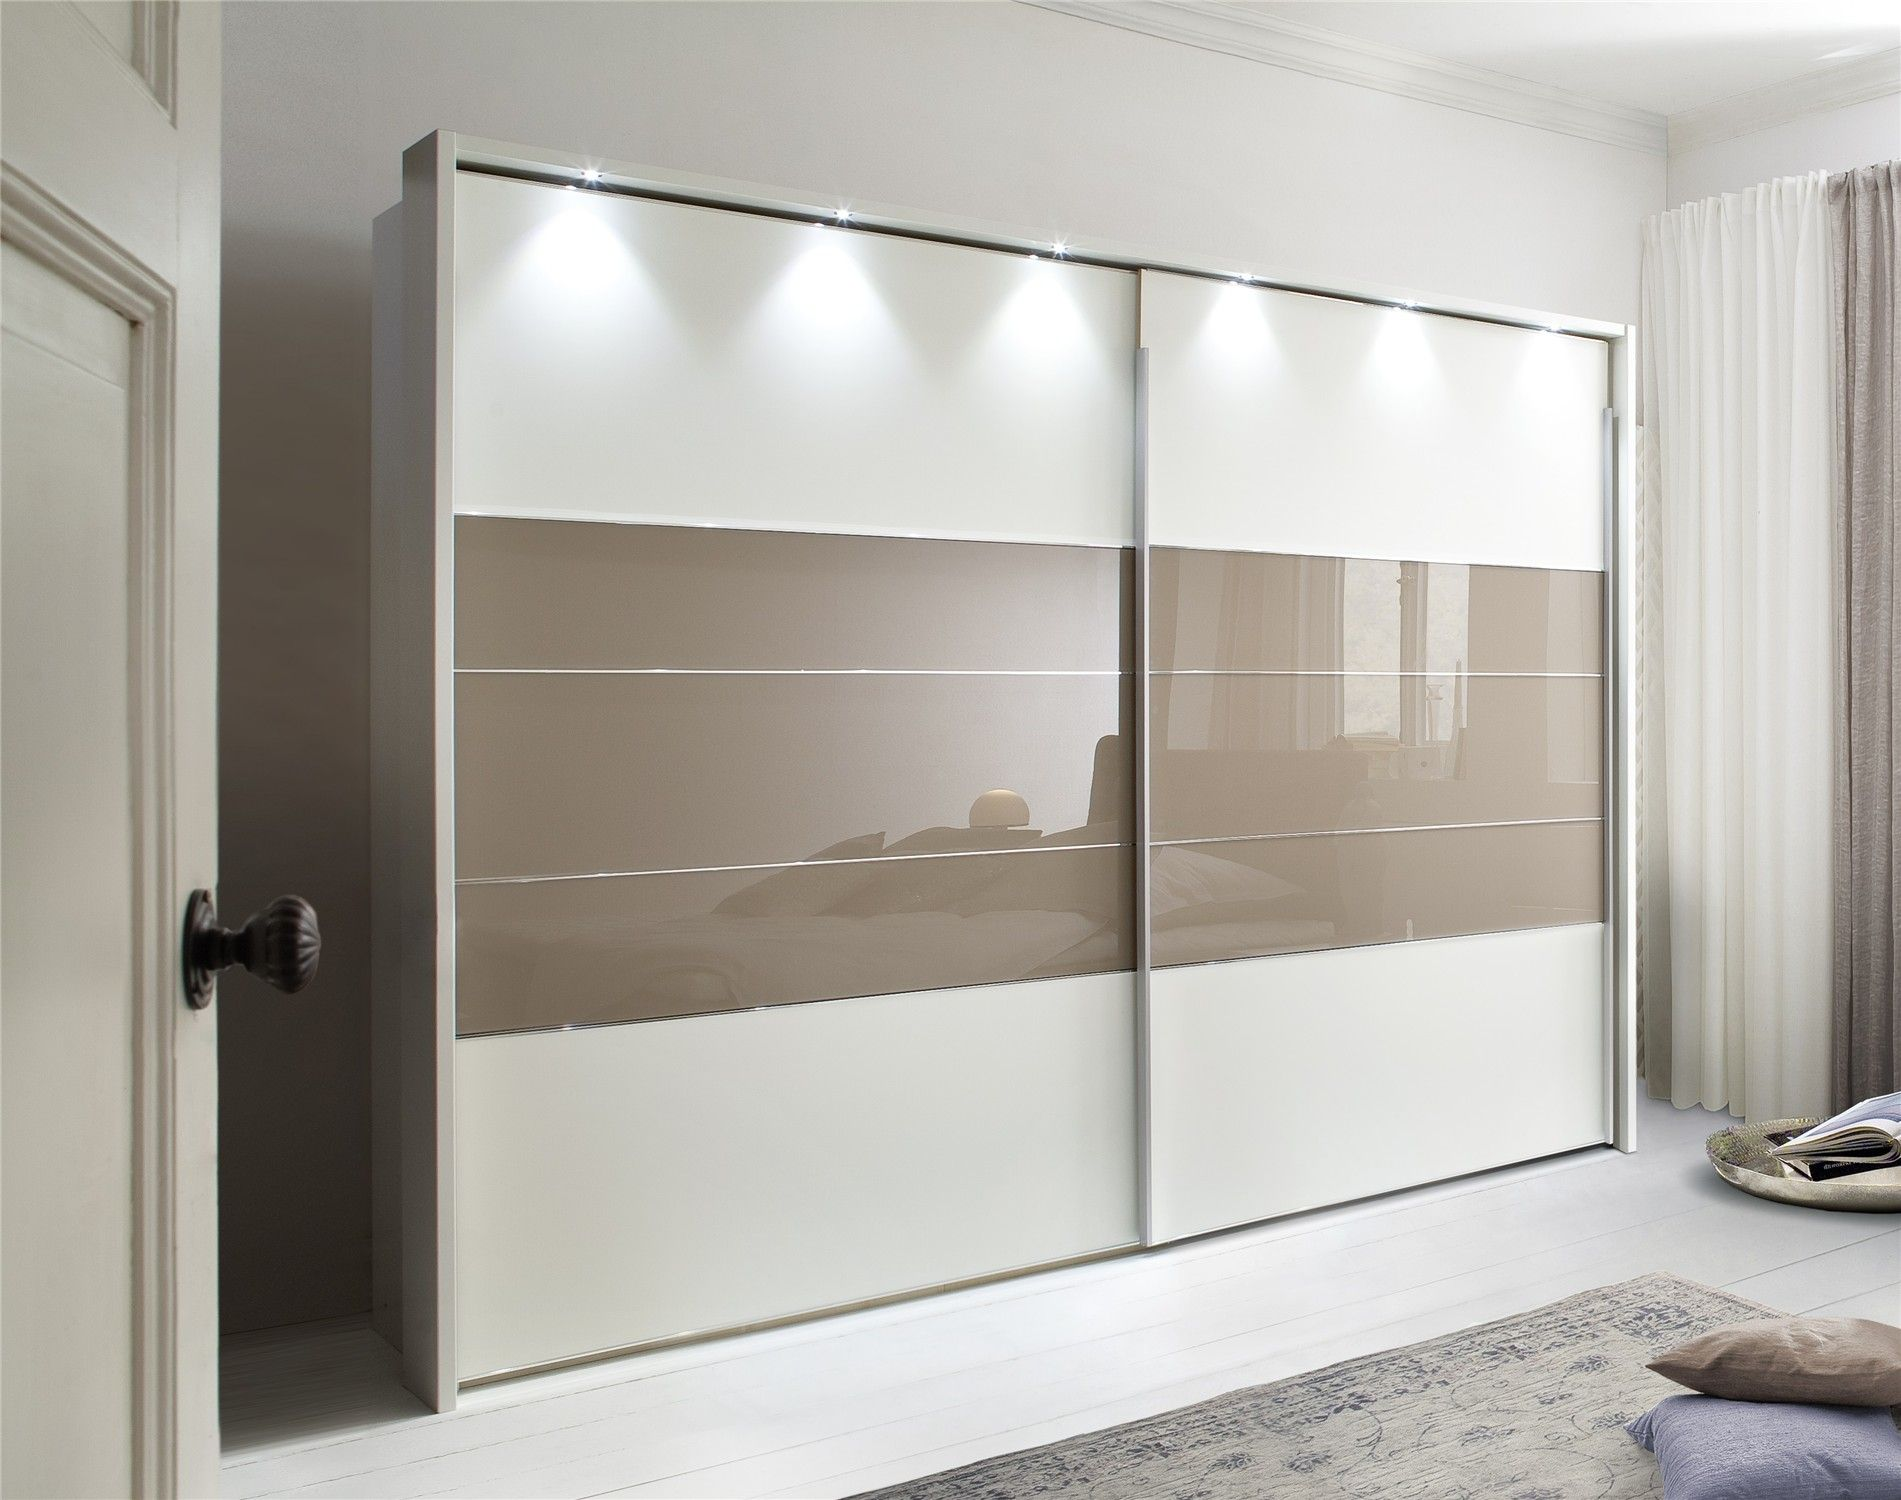 Sliding Door Wardrobes Wardrobes With Sliding Doors Free Standing Wardrobes With Sli Sliding Door Wardrobe Designs Sliding Wardrobe Doors Wardrobe Door Designs